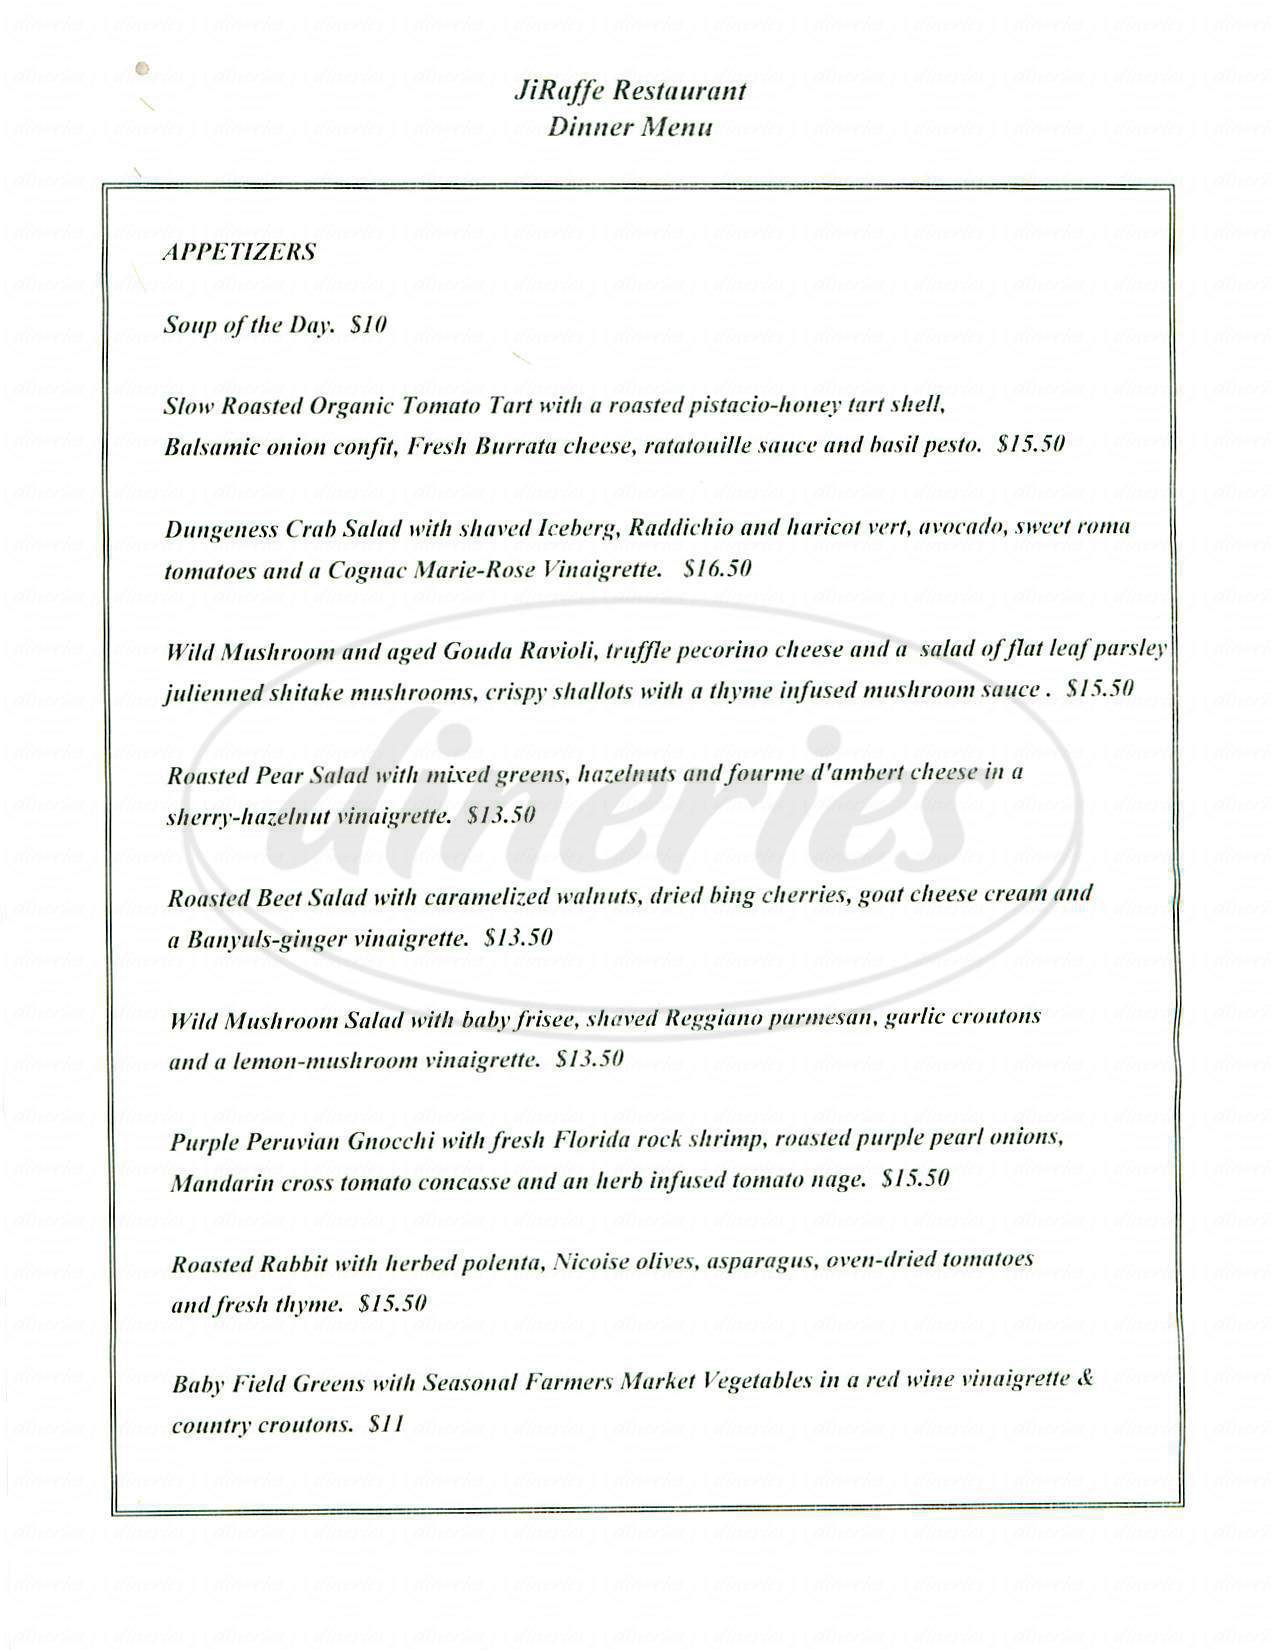 menu for JiRaffe Restaurant